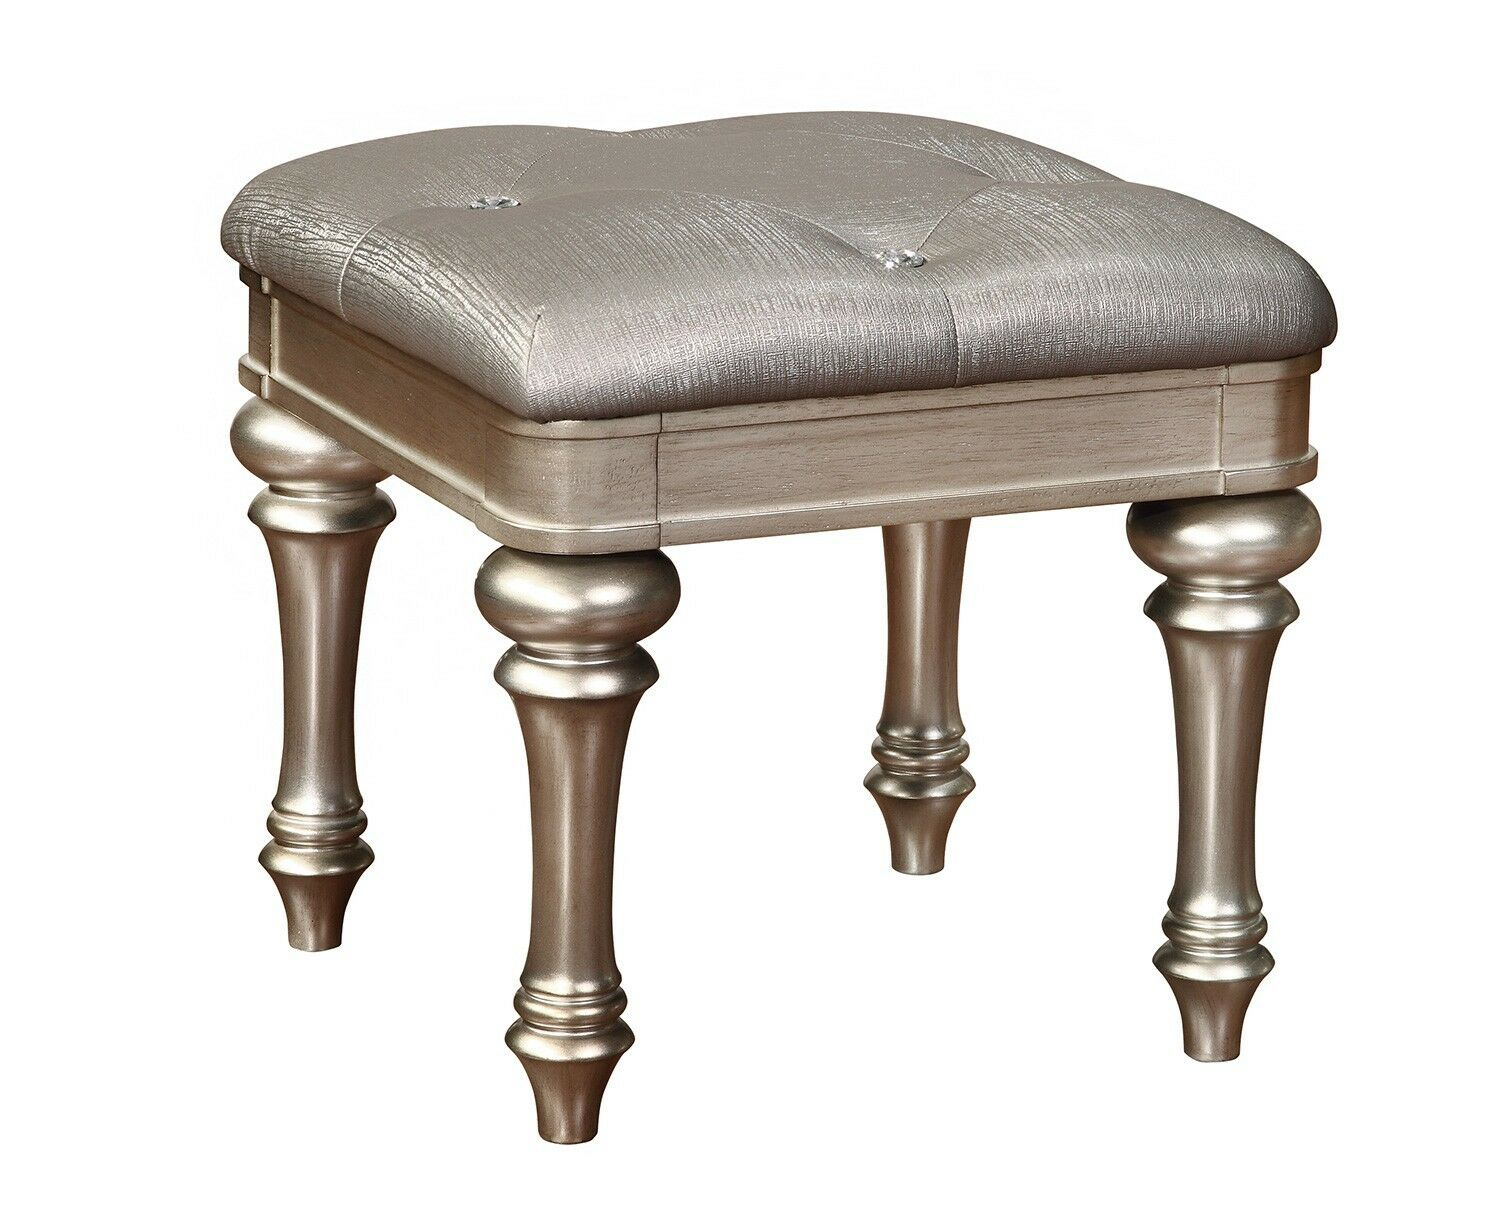 $106.99 - Coaster Home Furnishings 204189 Bling Game Collection Jewel Tufted Vanity Stool